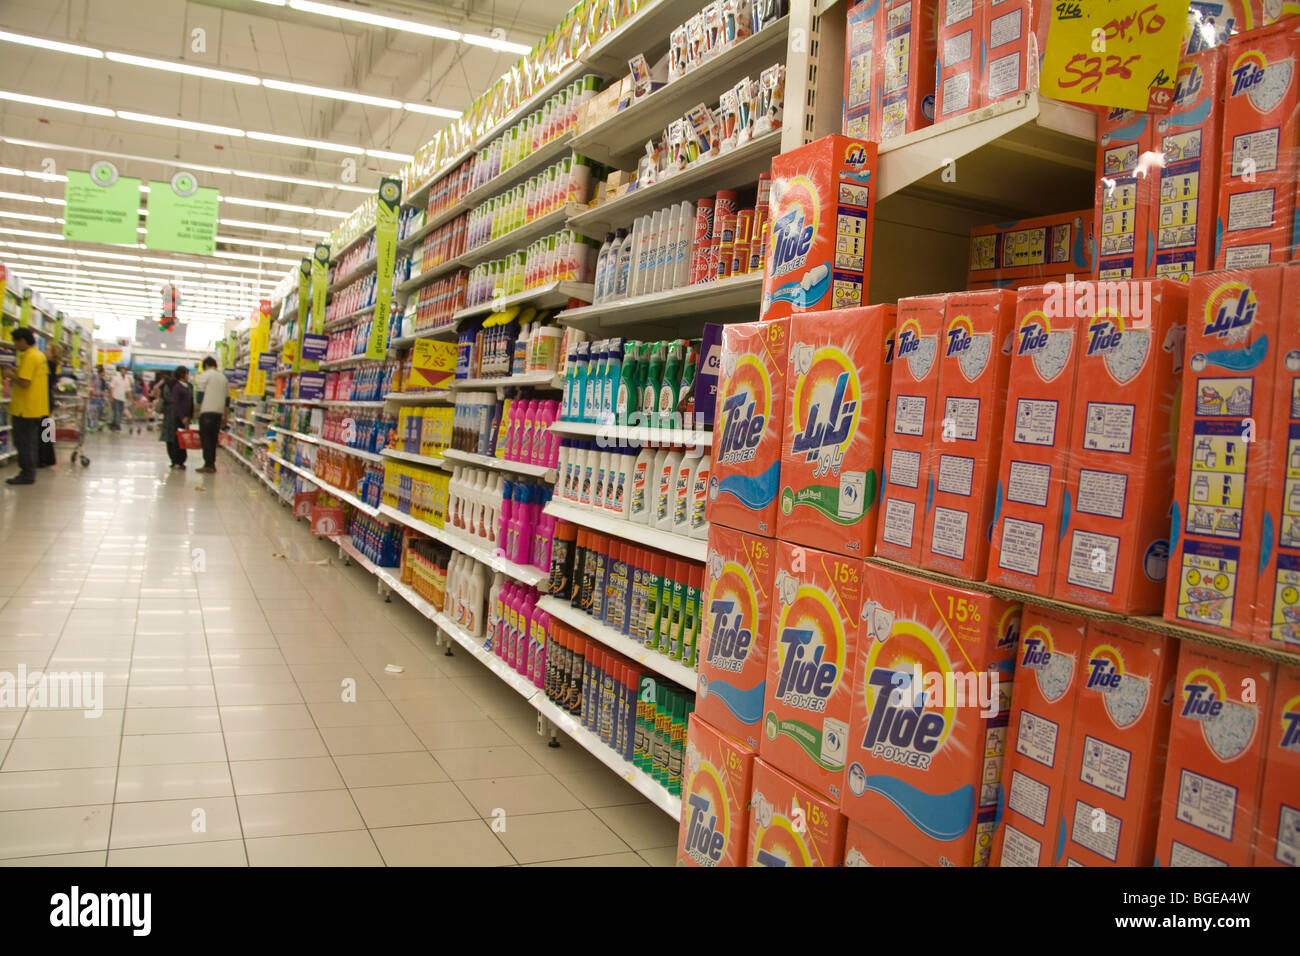 Dubai United Arab Emirates The household cleaning goods area of a supermarket in the Dubai Mall of the Emirates - Stock Image